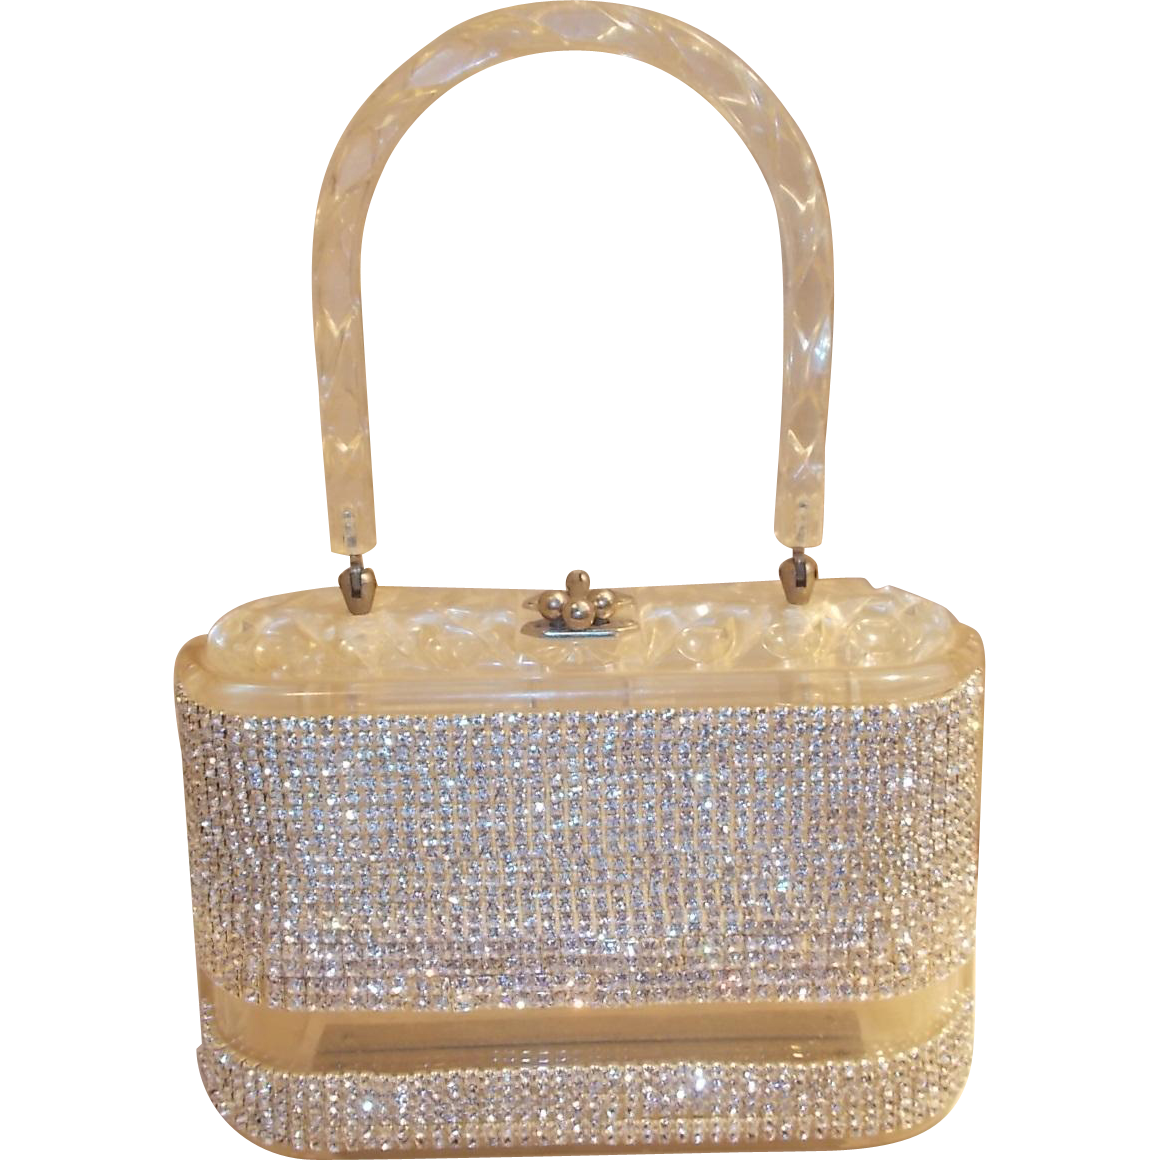 Transparent purses clear fashion. Thank you for looking